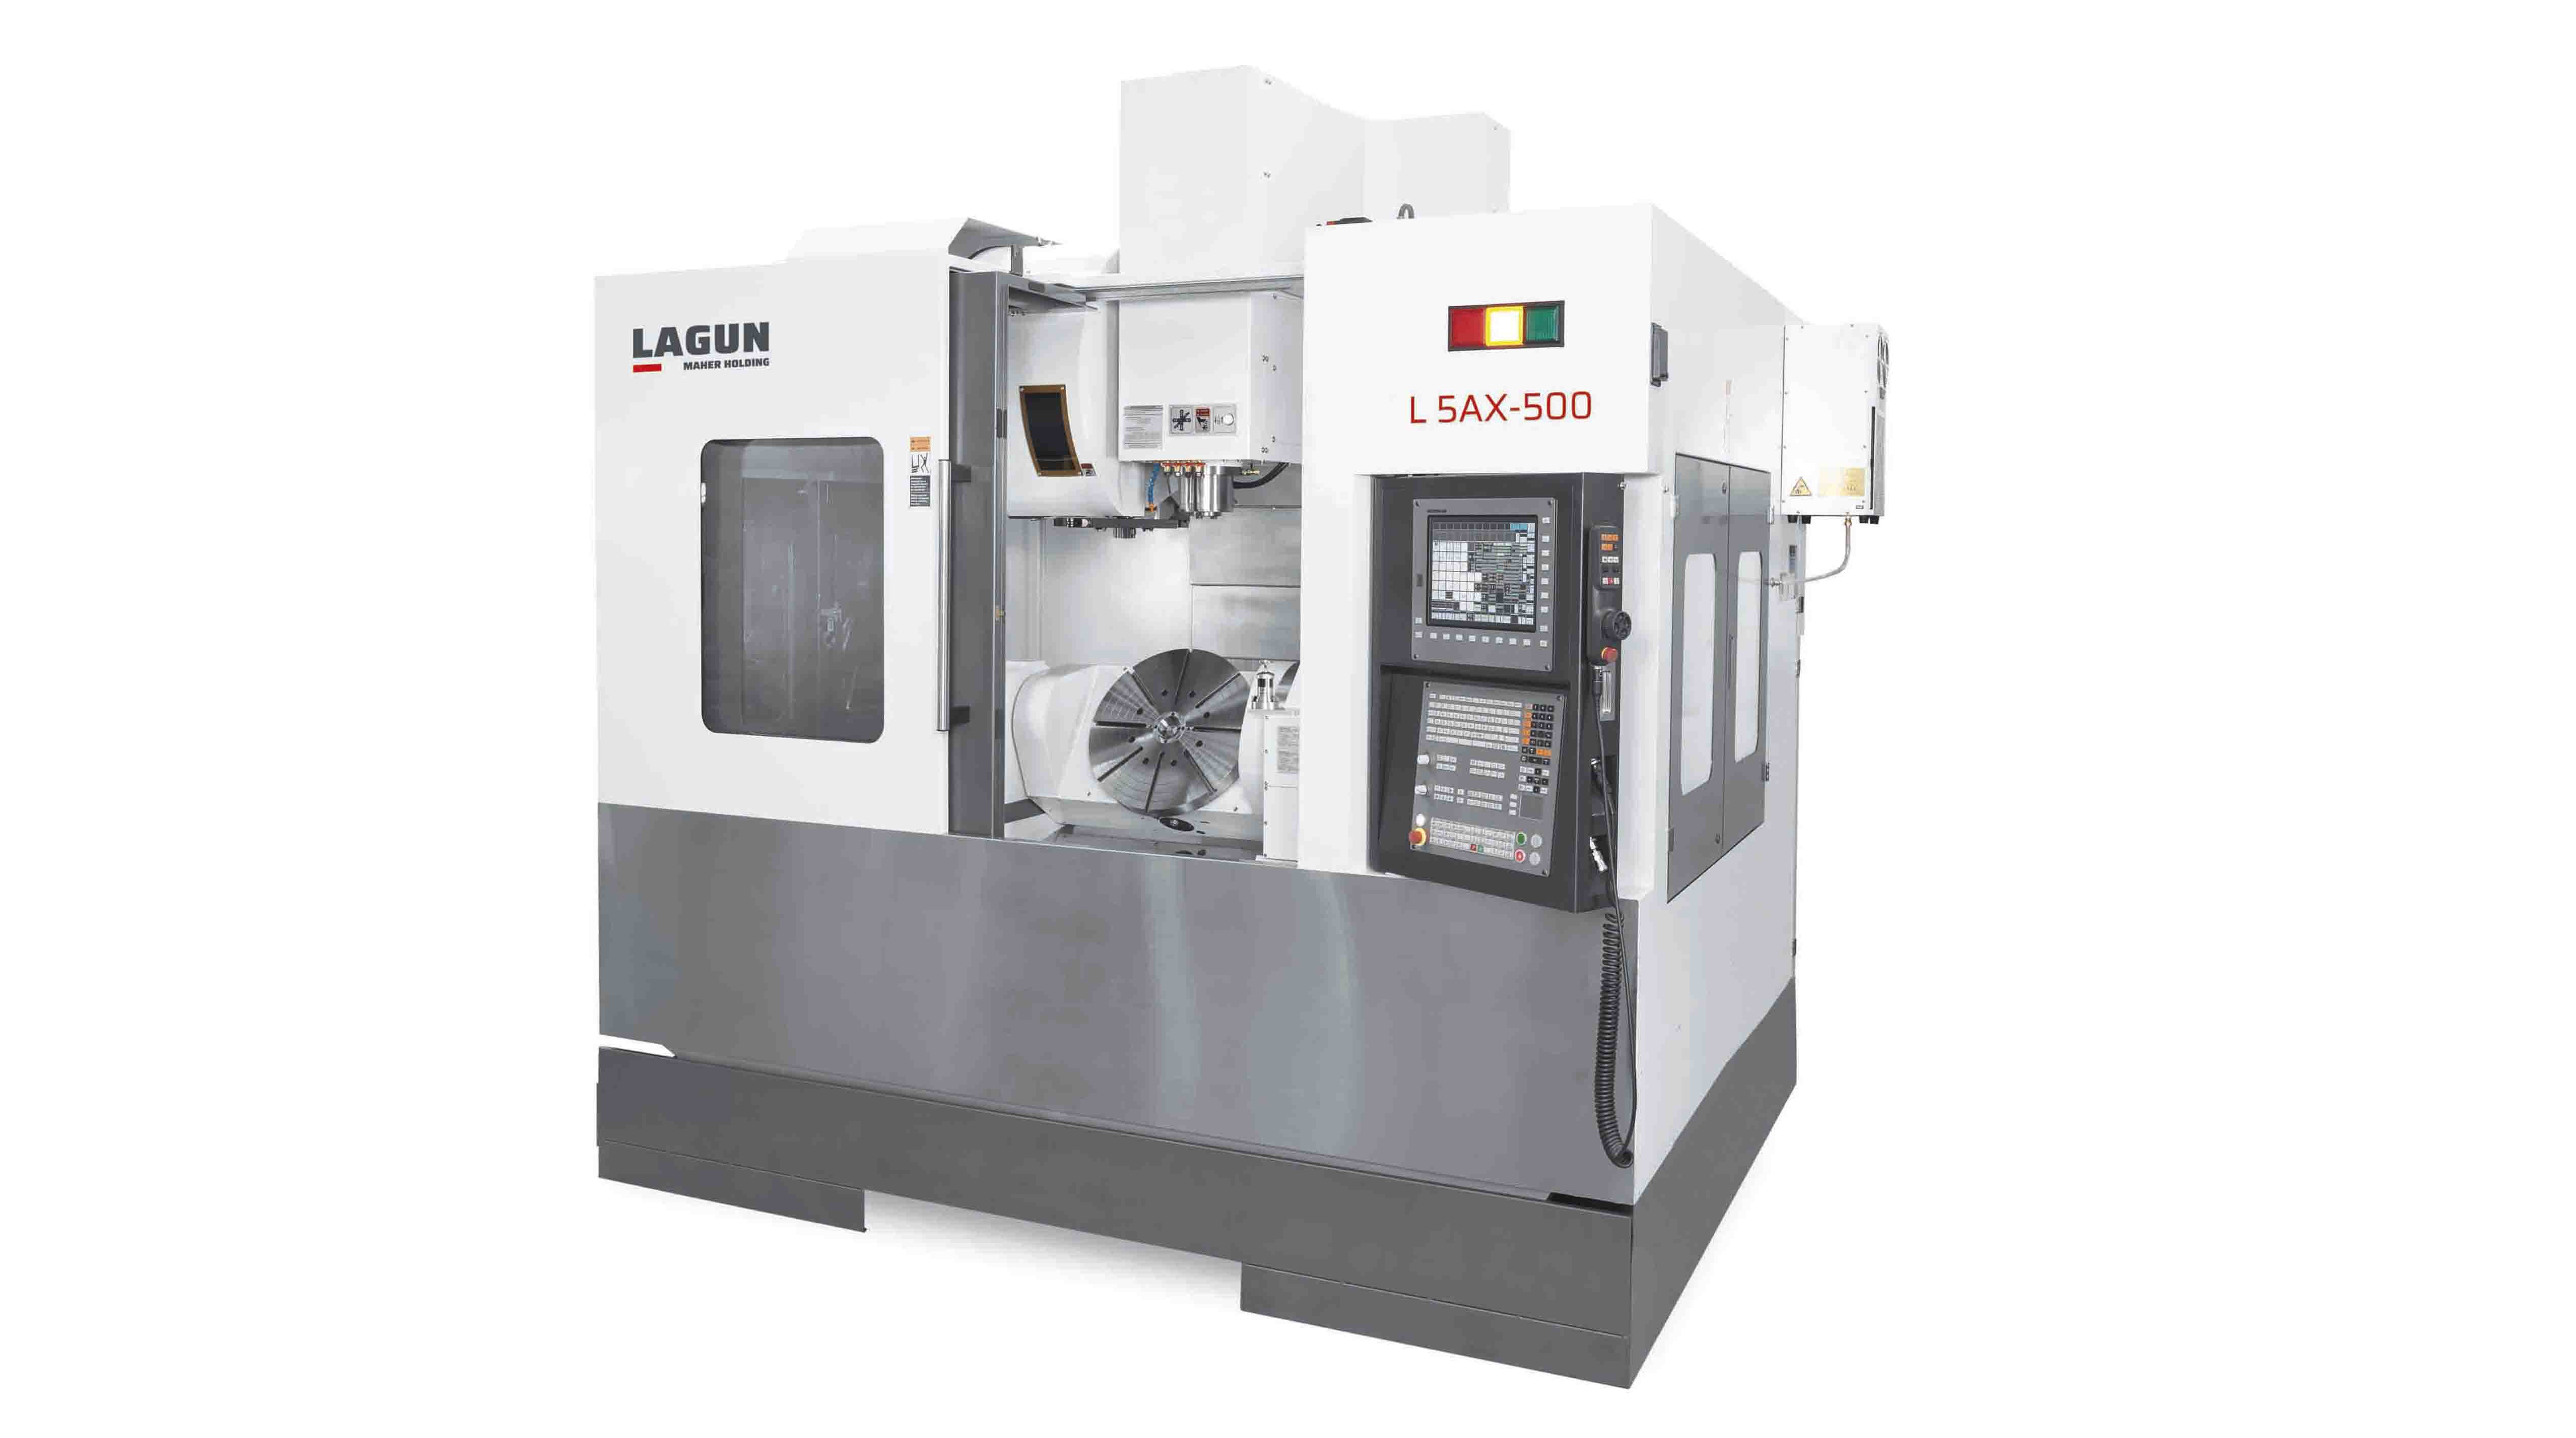 5 Axes Simultaneous Machining Centre: L 5AX-500 model